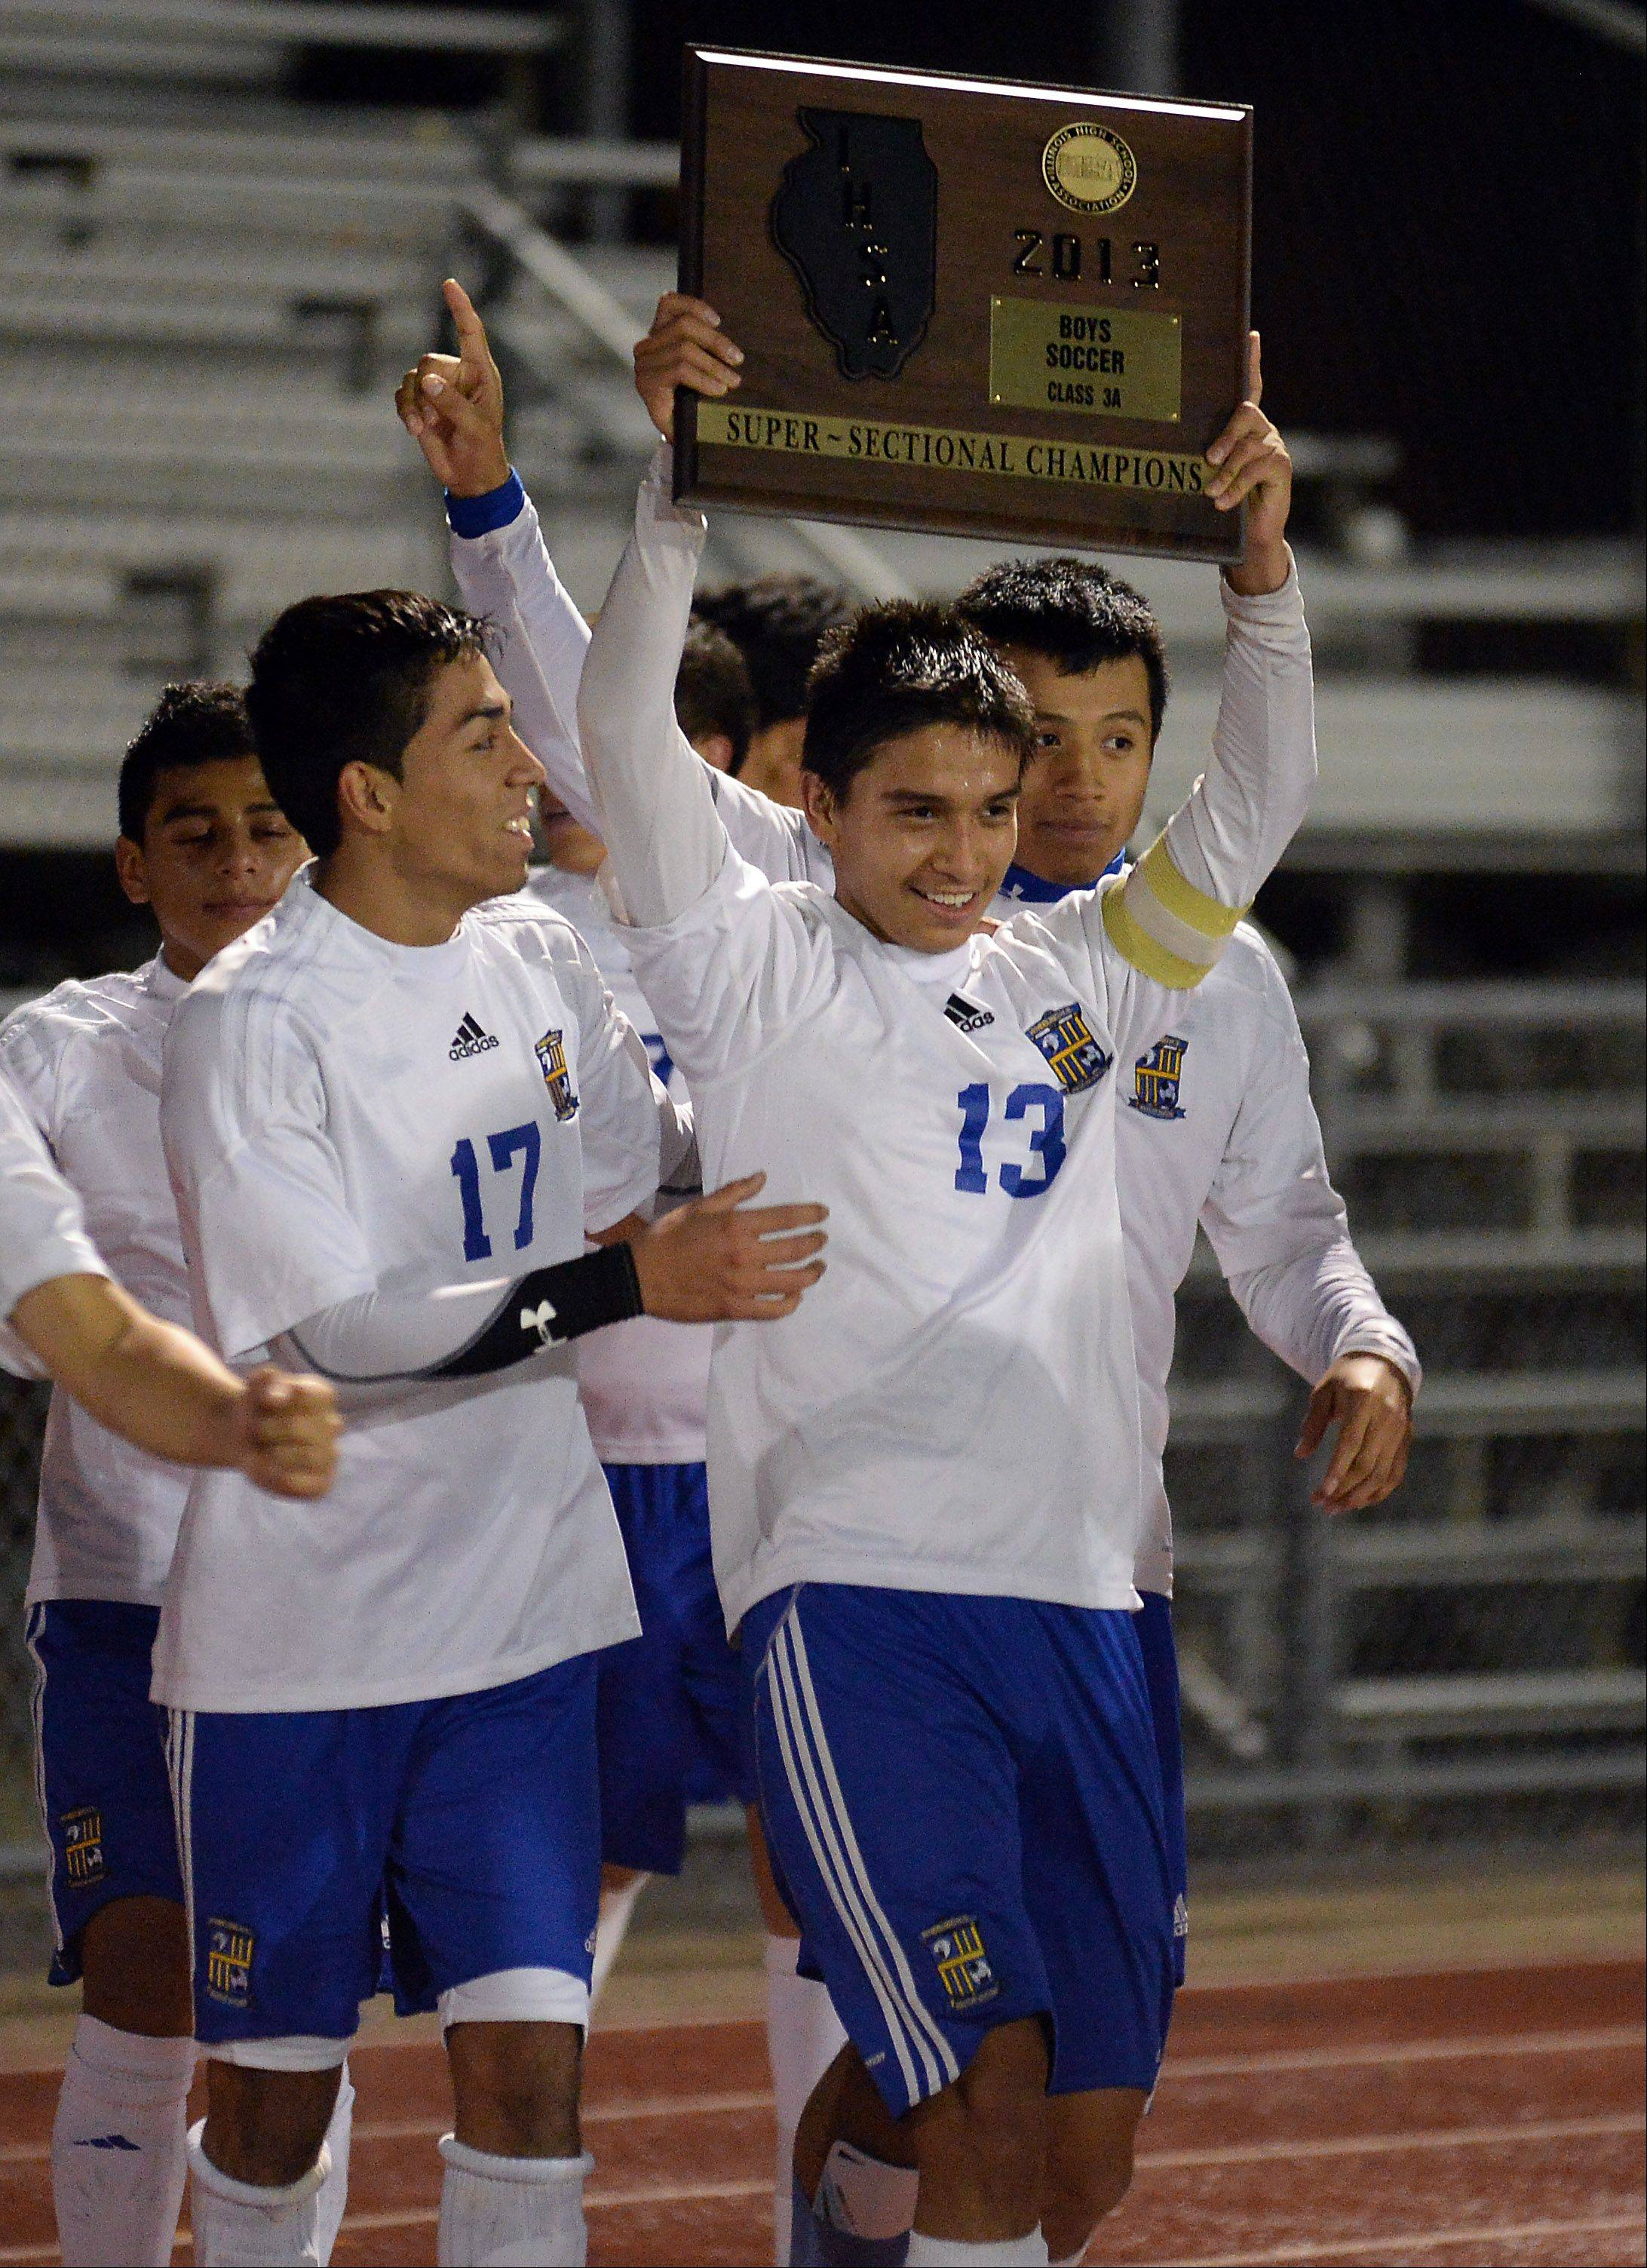 Wheeling's Jose Garcia and teammate Michael Hernandez celebrate their 2-1 victory over Barrington on Tuesday.